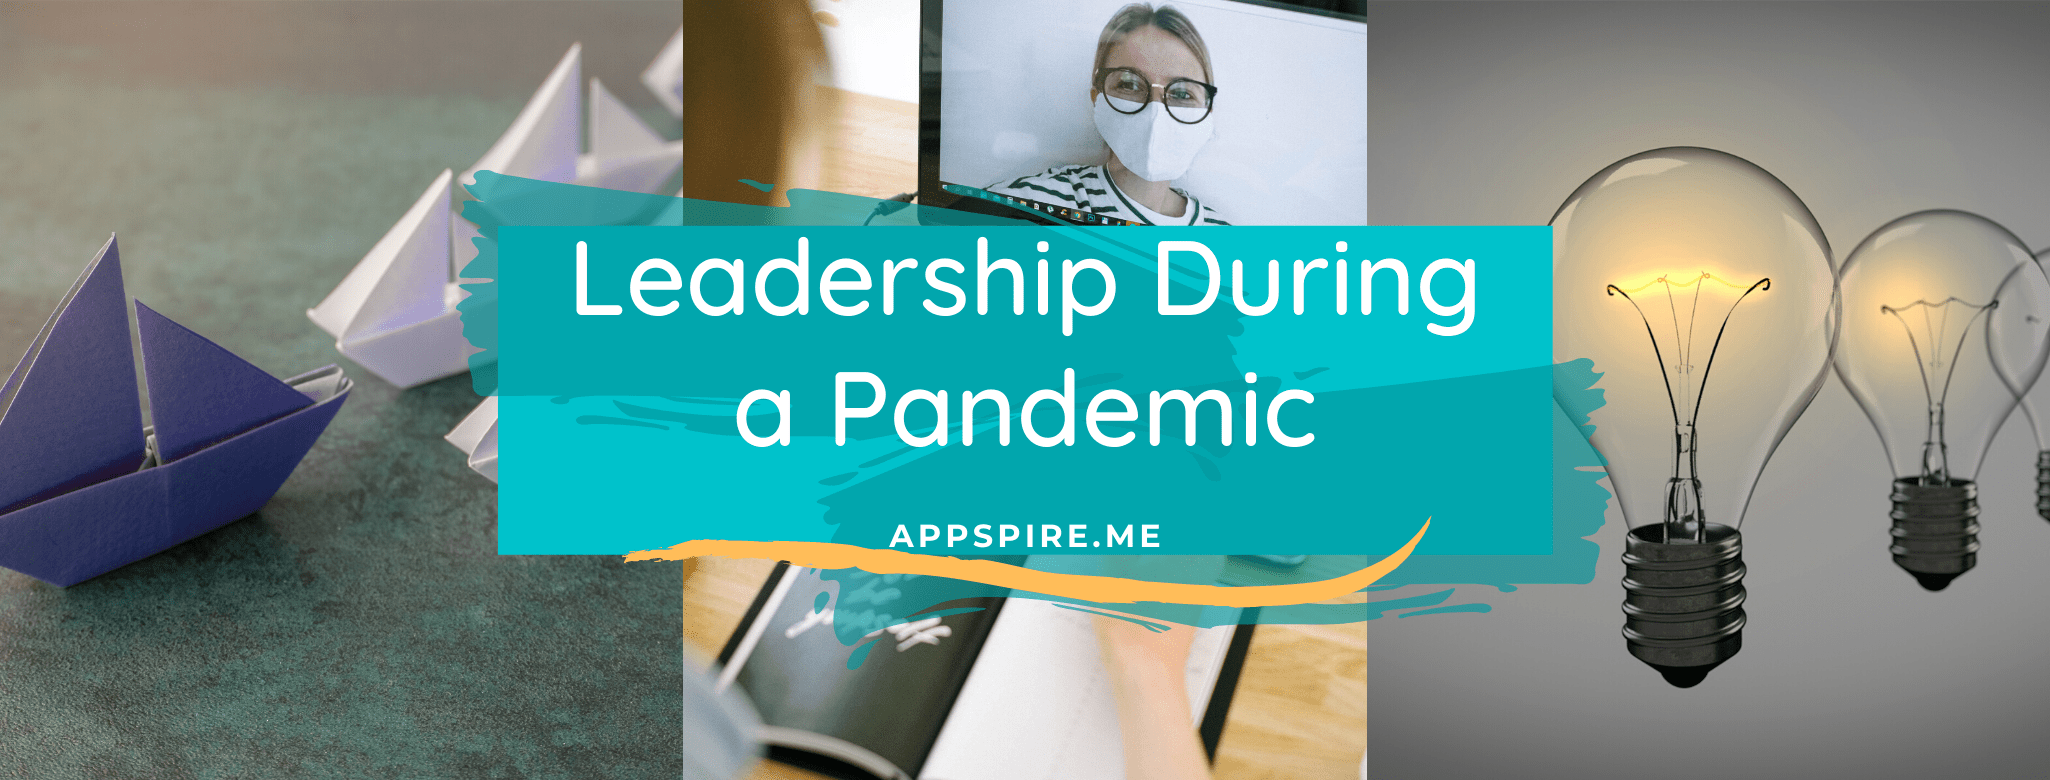 Leadership During a Pandemic